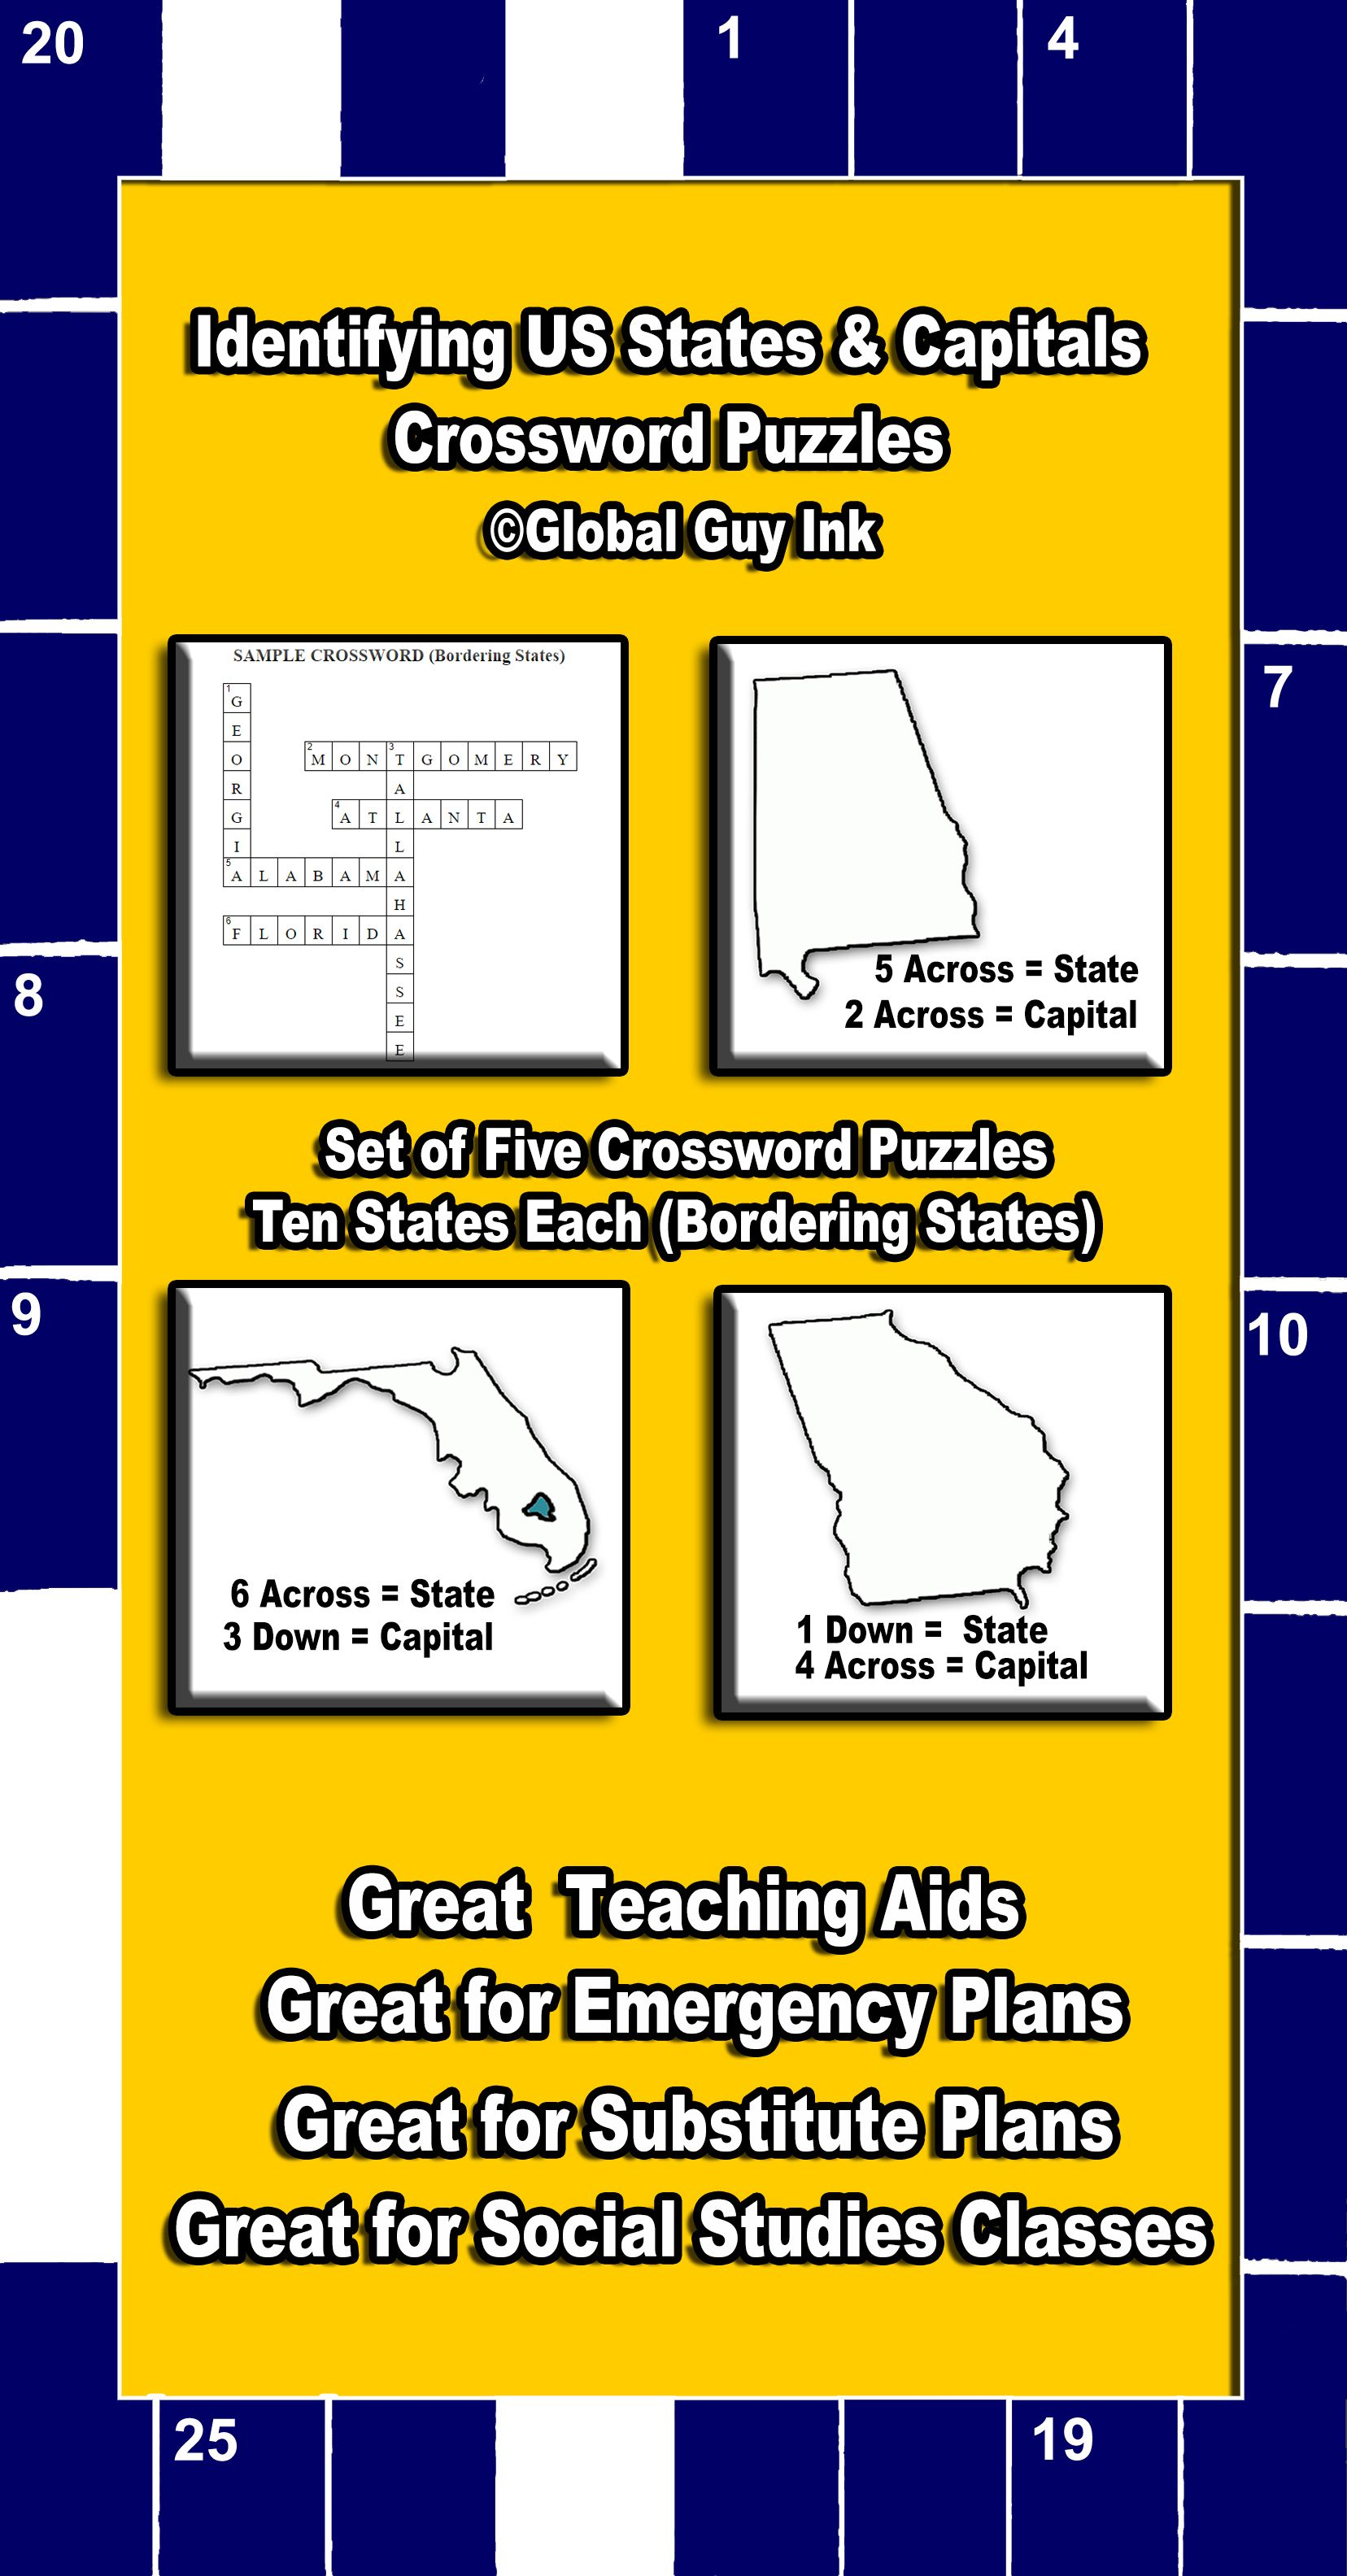 Crossword Puzzles That Will Help Students Learn The